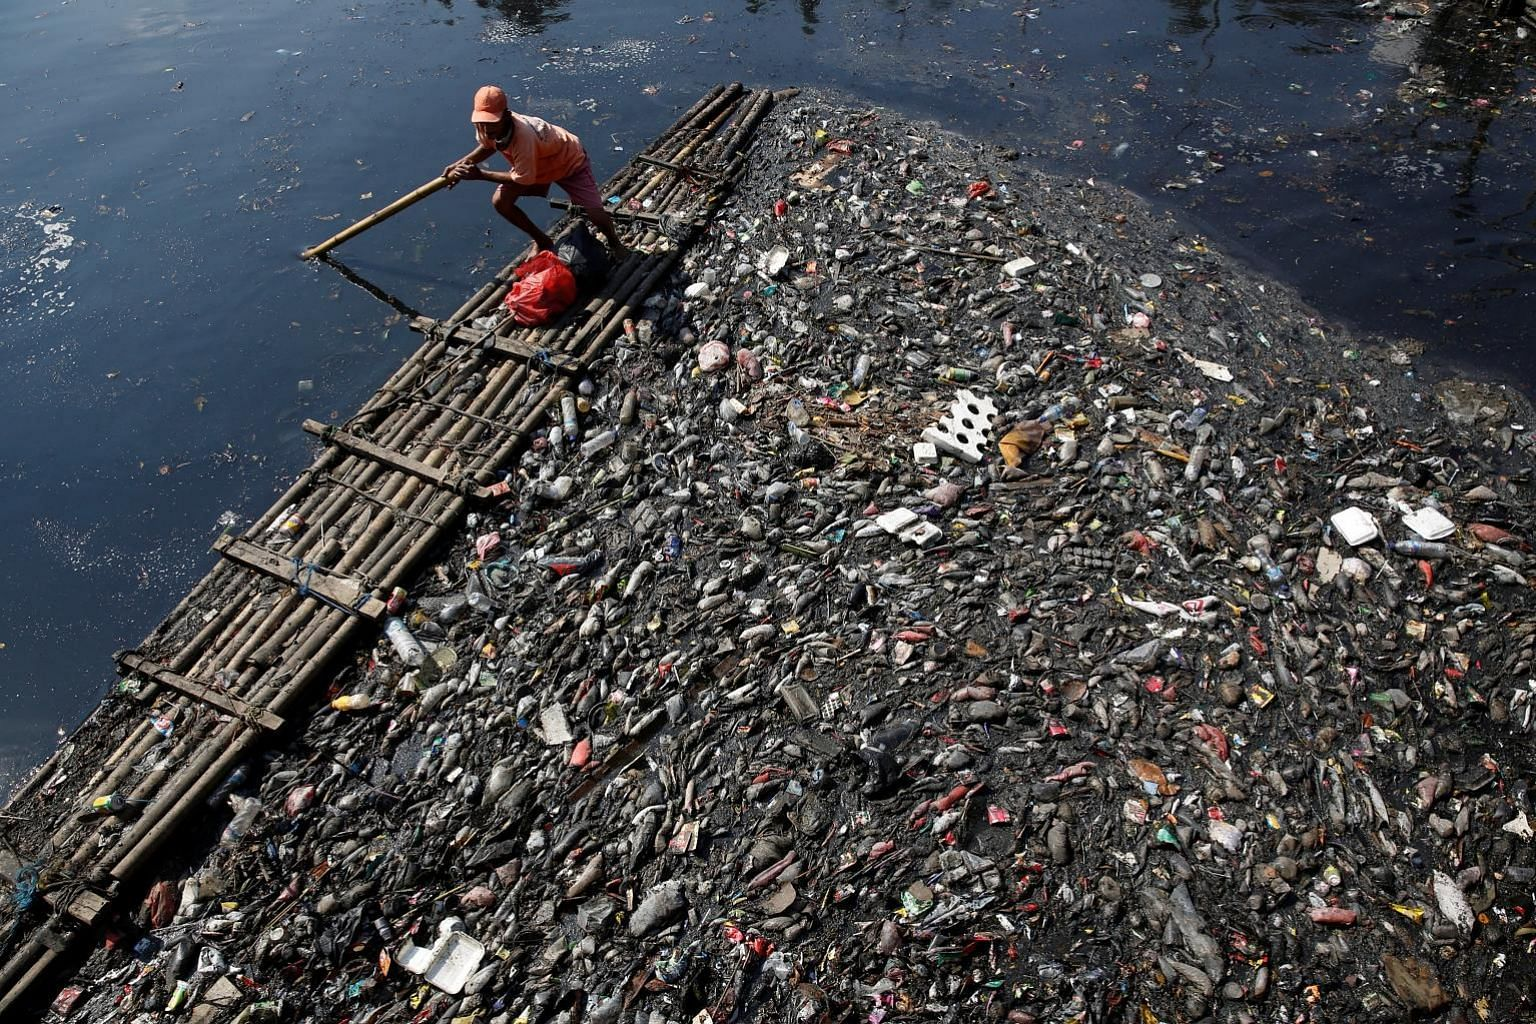 A worker using a raft to gather plastic and other debris for collection and disposal from a river in Jakarta on June 7.